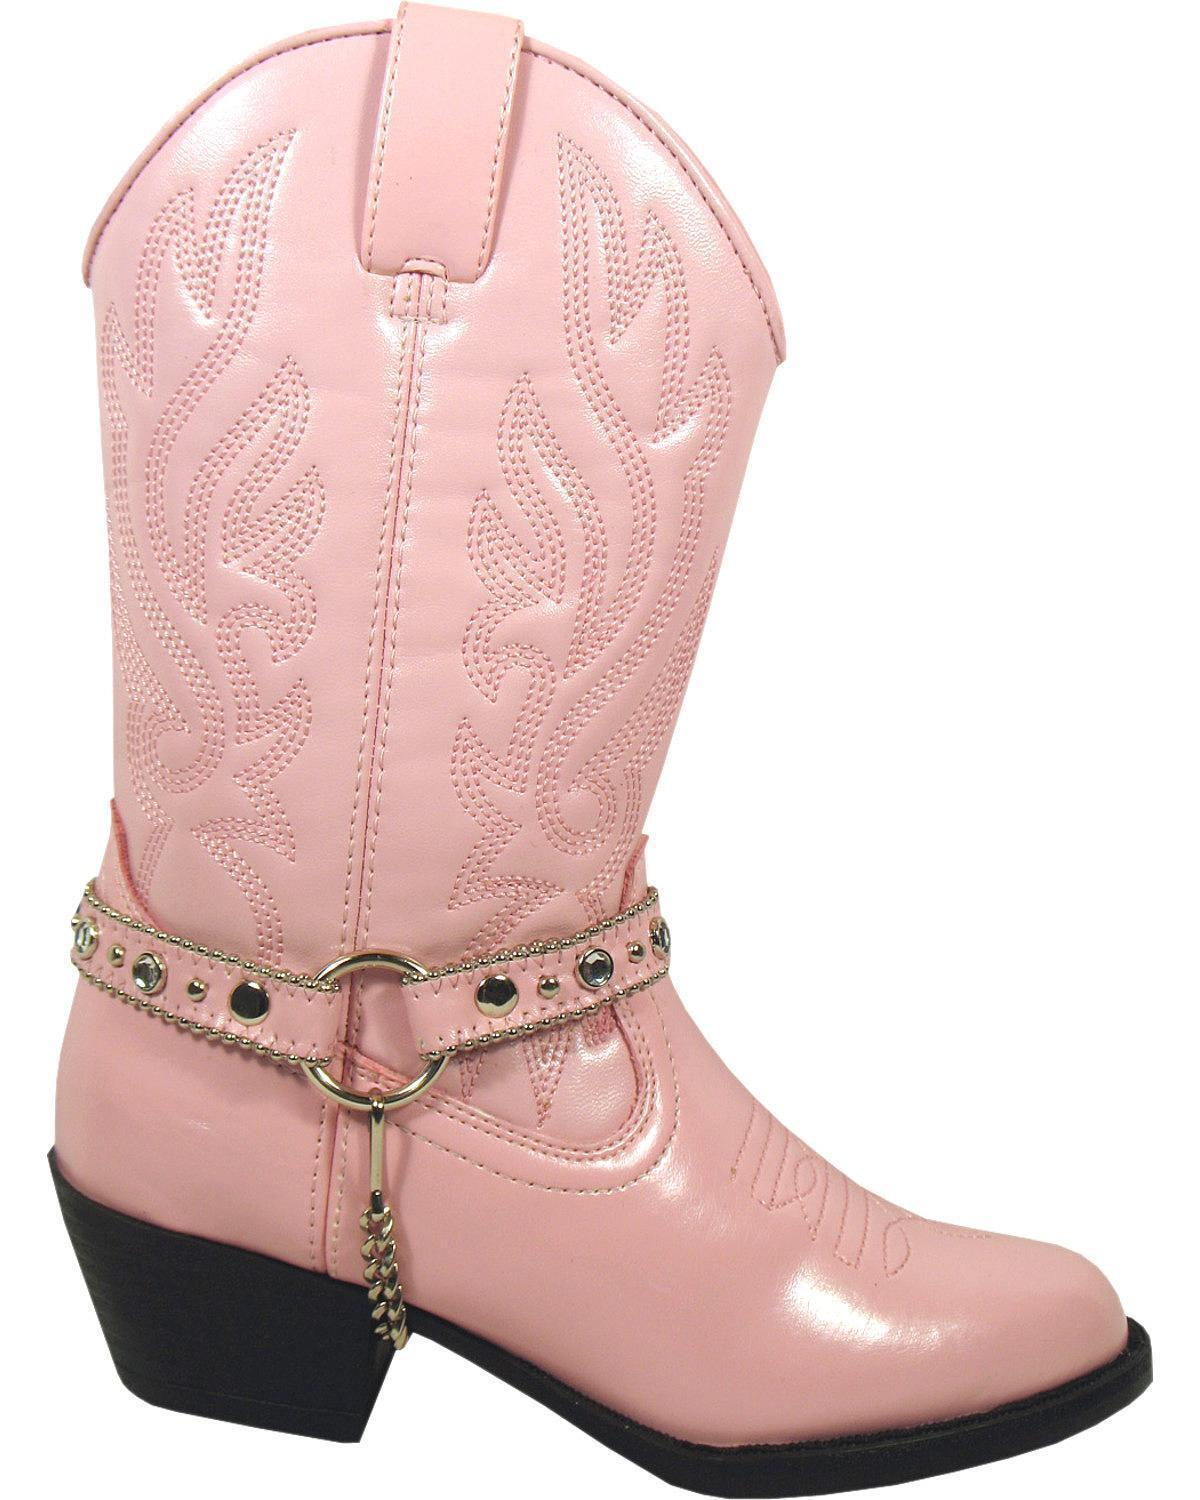 YOUTH SMOKY MOUNTAIN GIRLS CHARLESTON PINK WESTERN BOOTS 1179Y